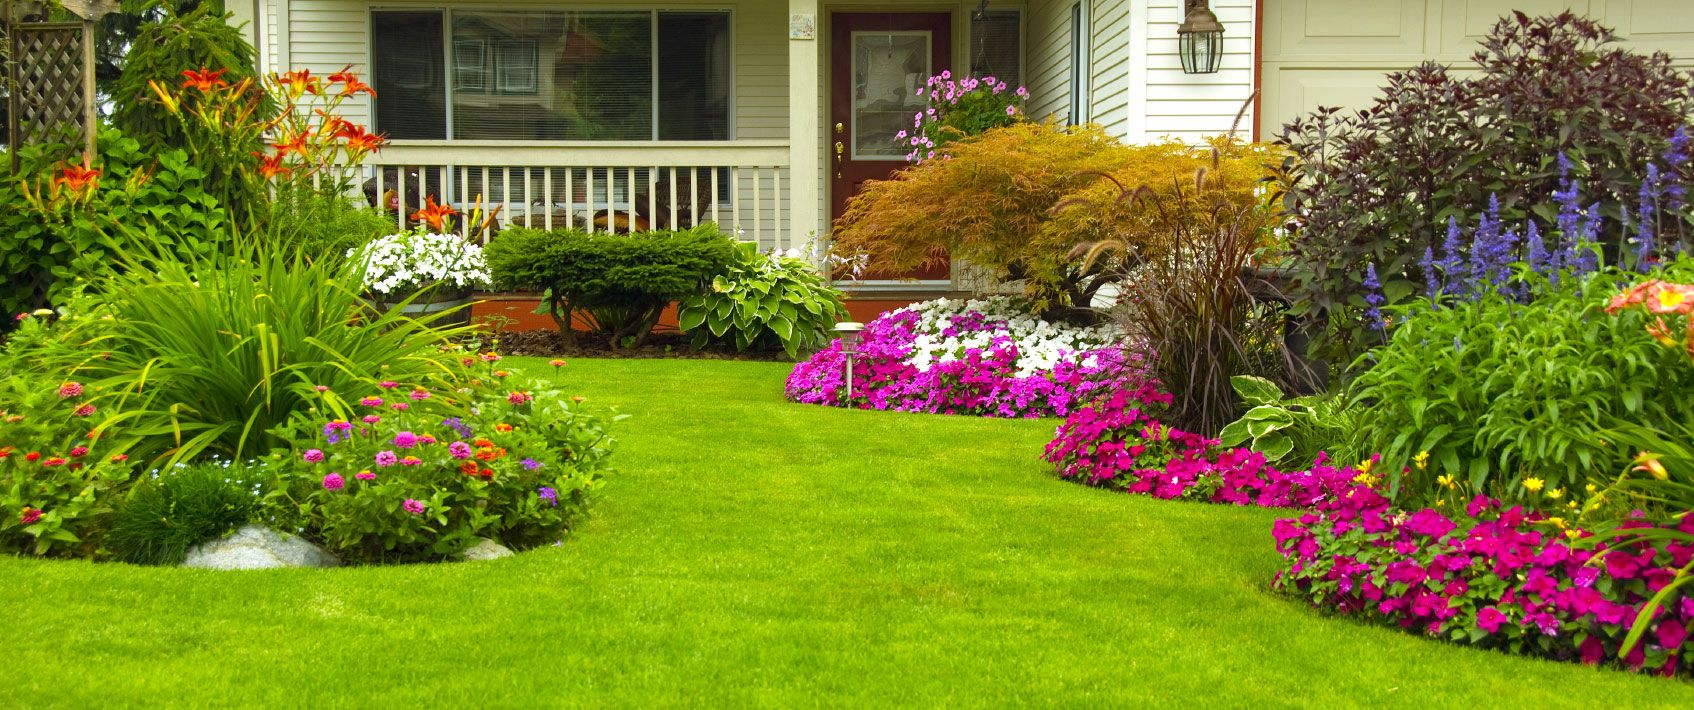 7 Easy Ideas To Create A Beautifully Landscaped Yard Backyard